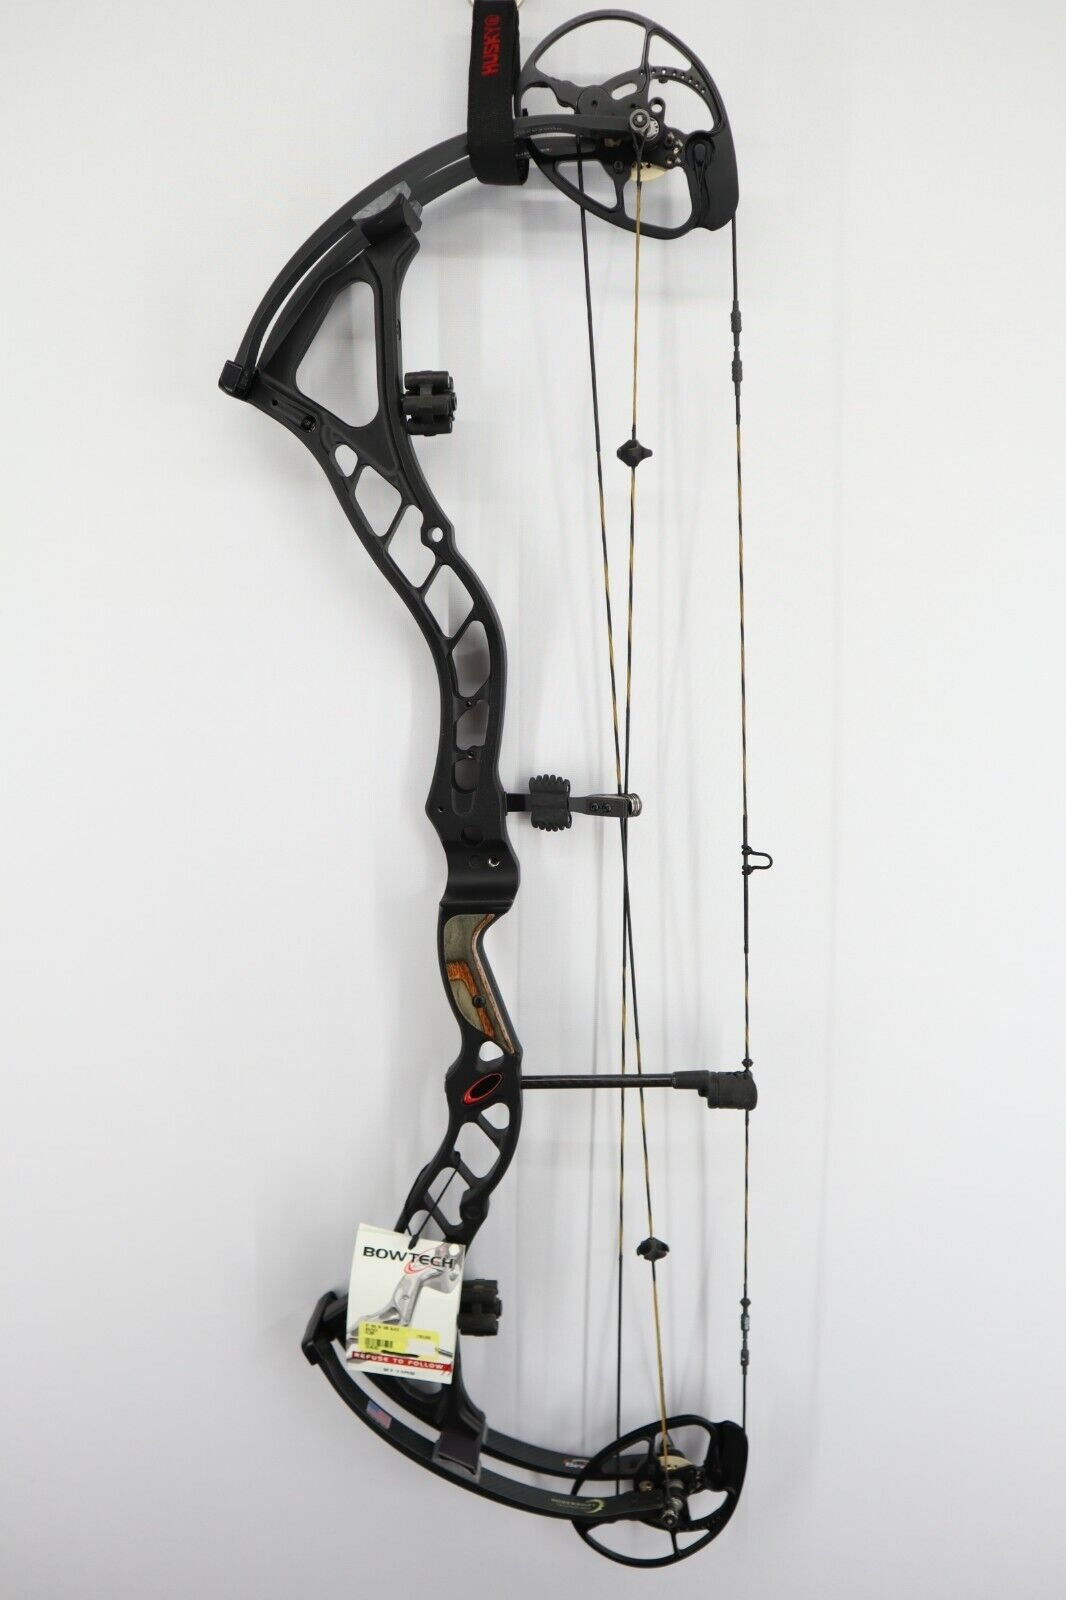 Bowtech Insanity CPX Compound Bow String /& Cable Set by Proline Bowstrings